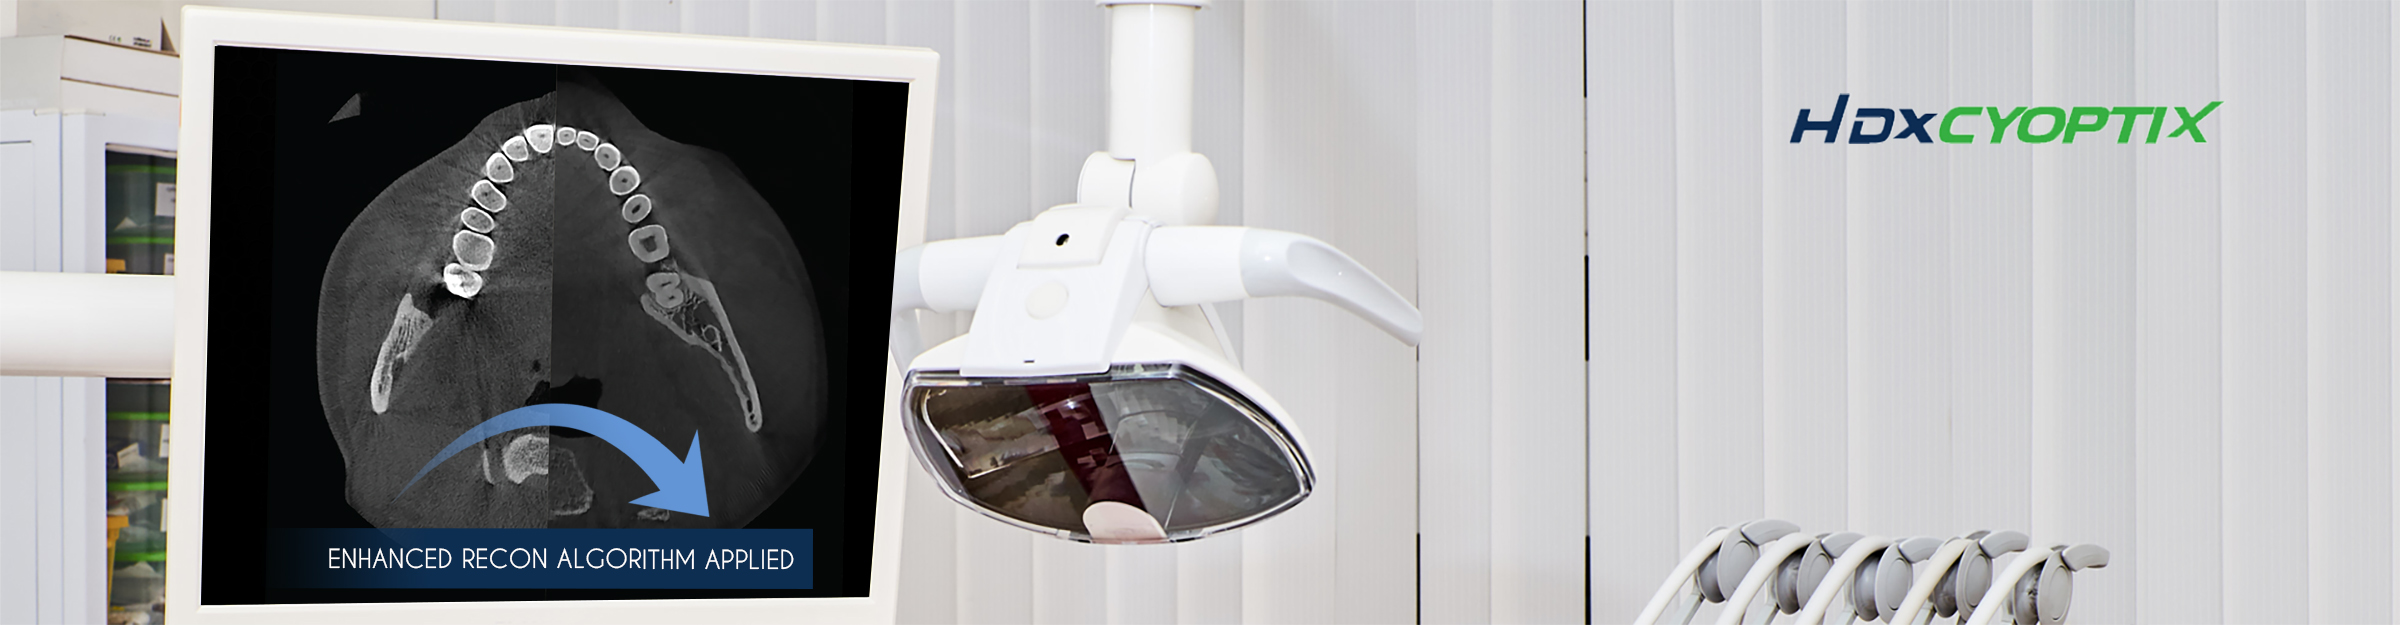 HDX Will Technology main image of dental monitor in office